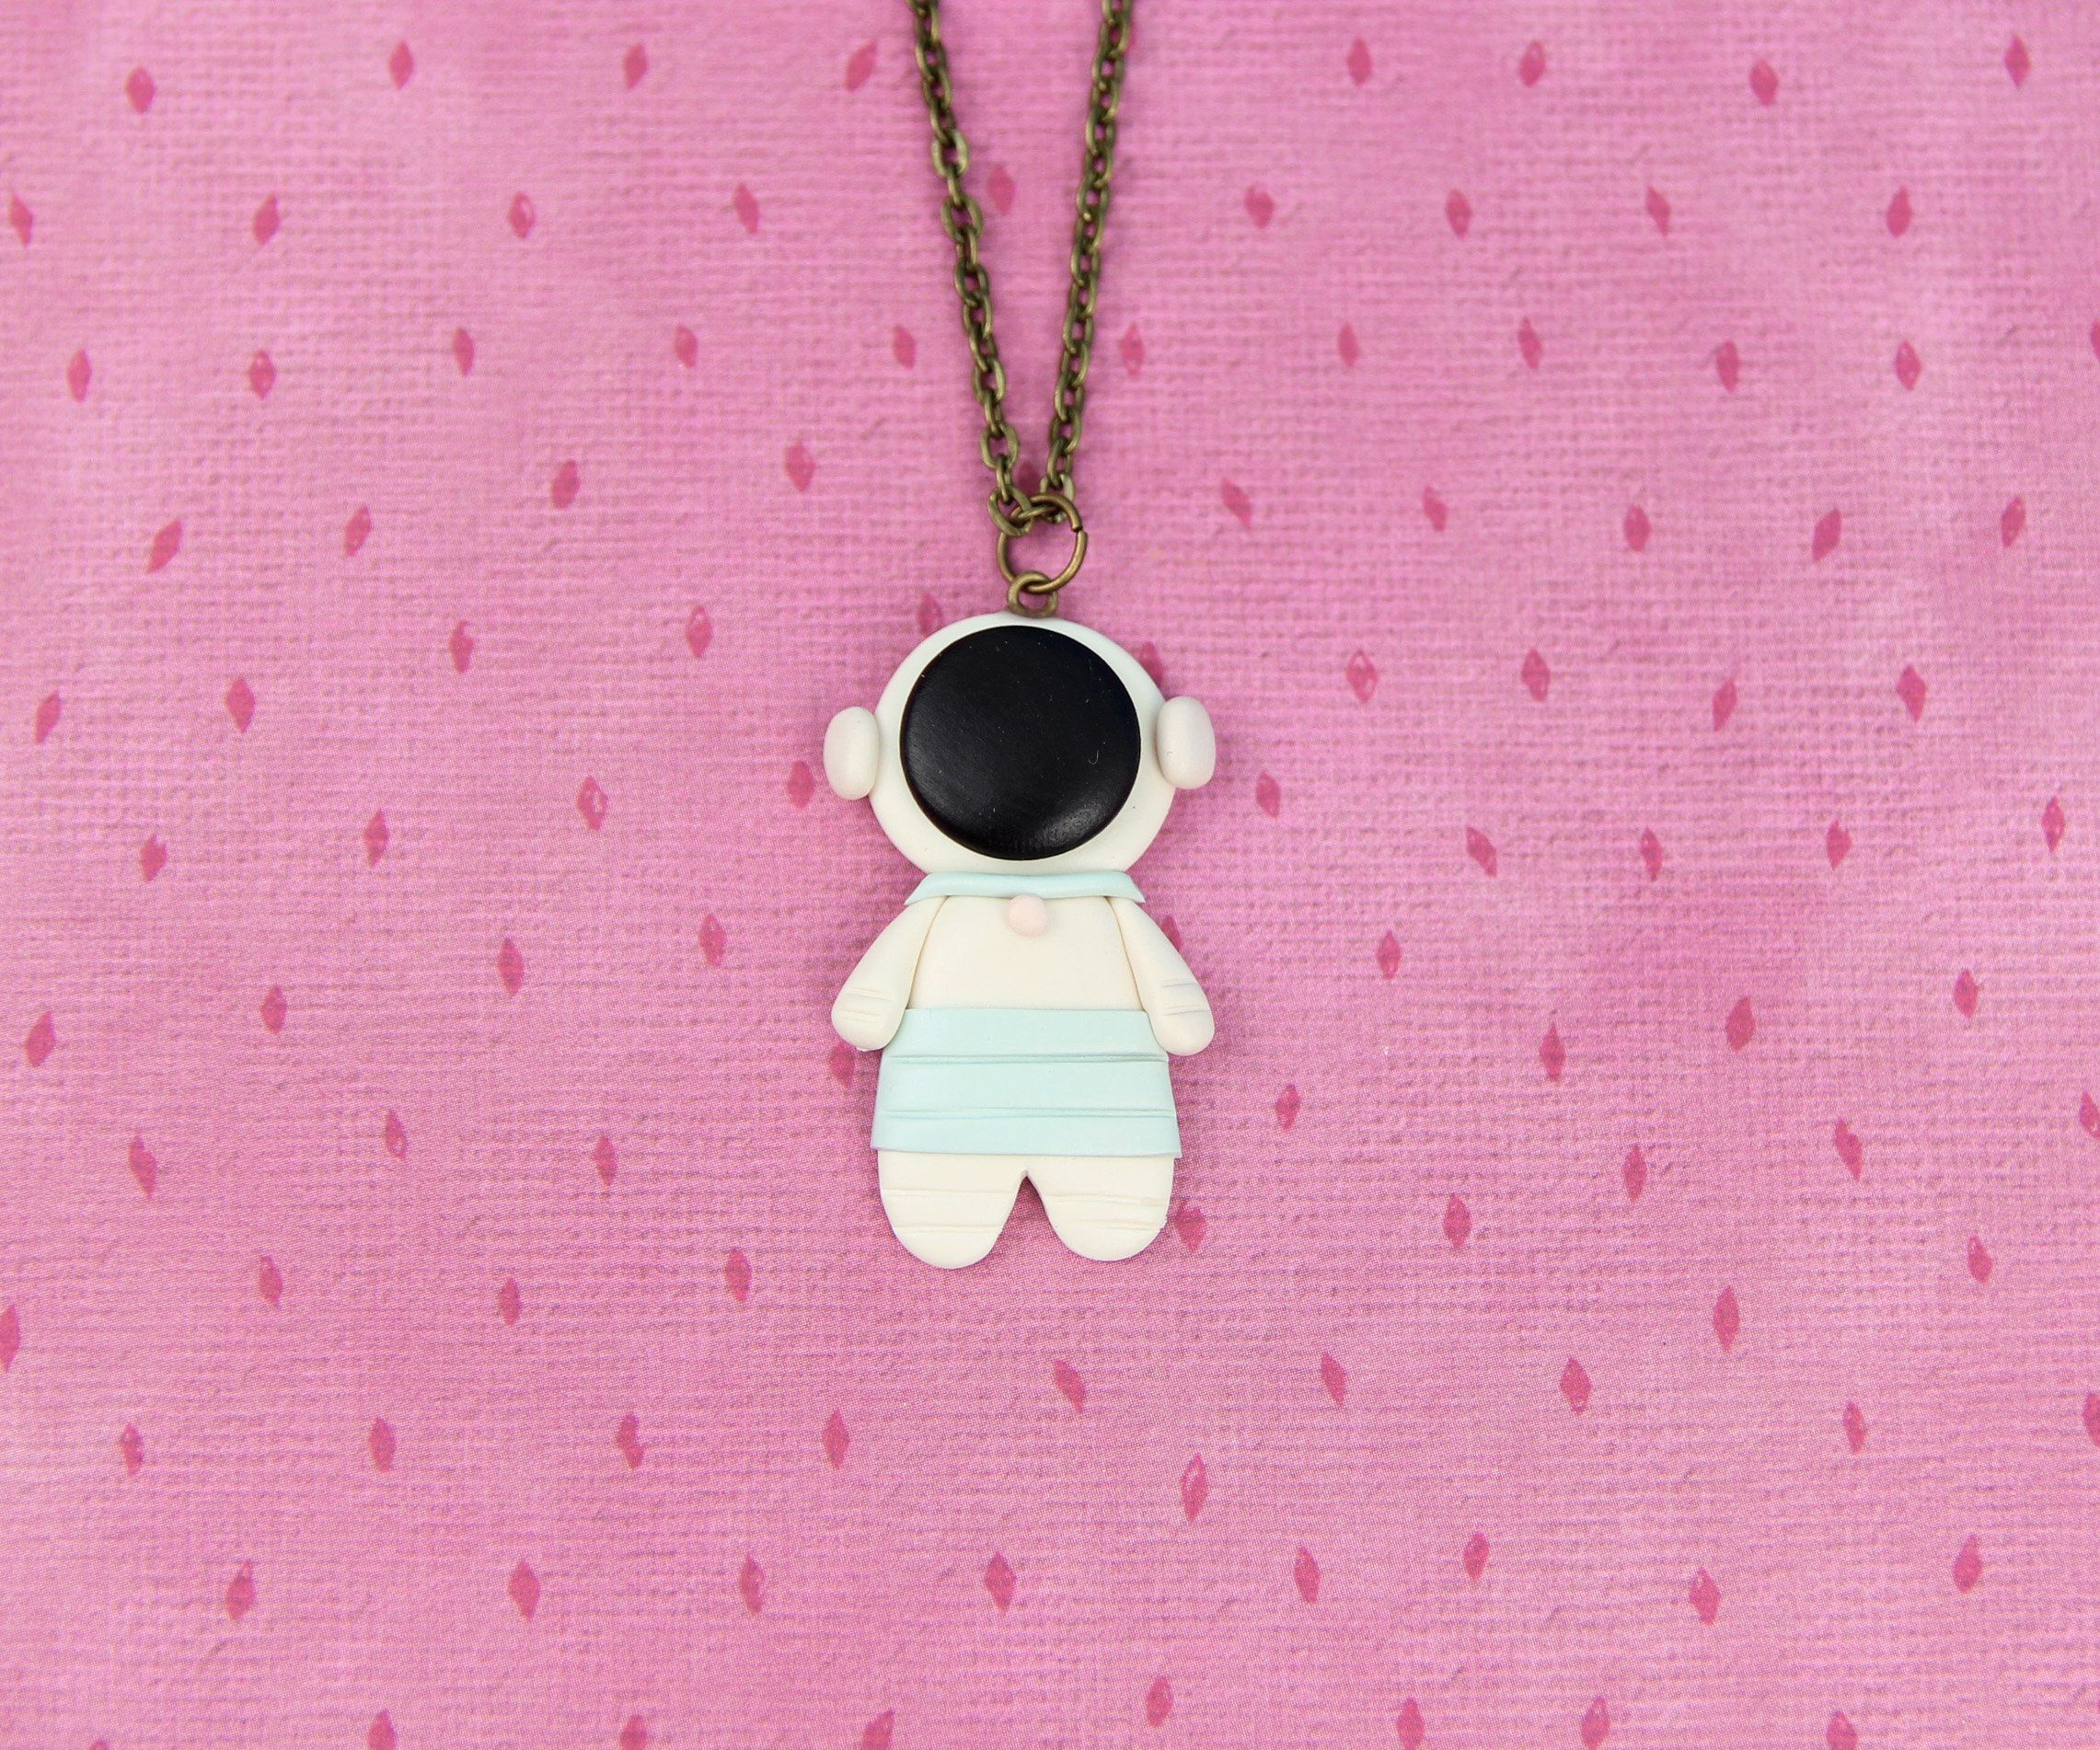 Astronaut necklace gift for kids space jewelry nasa